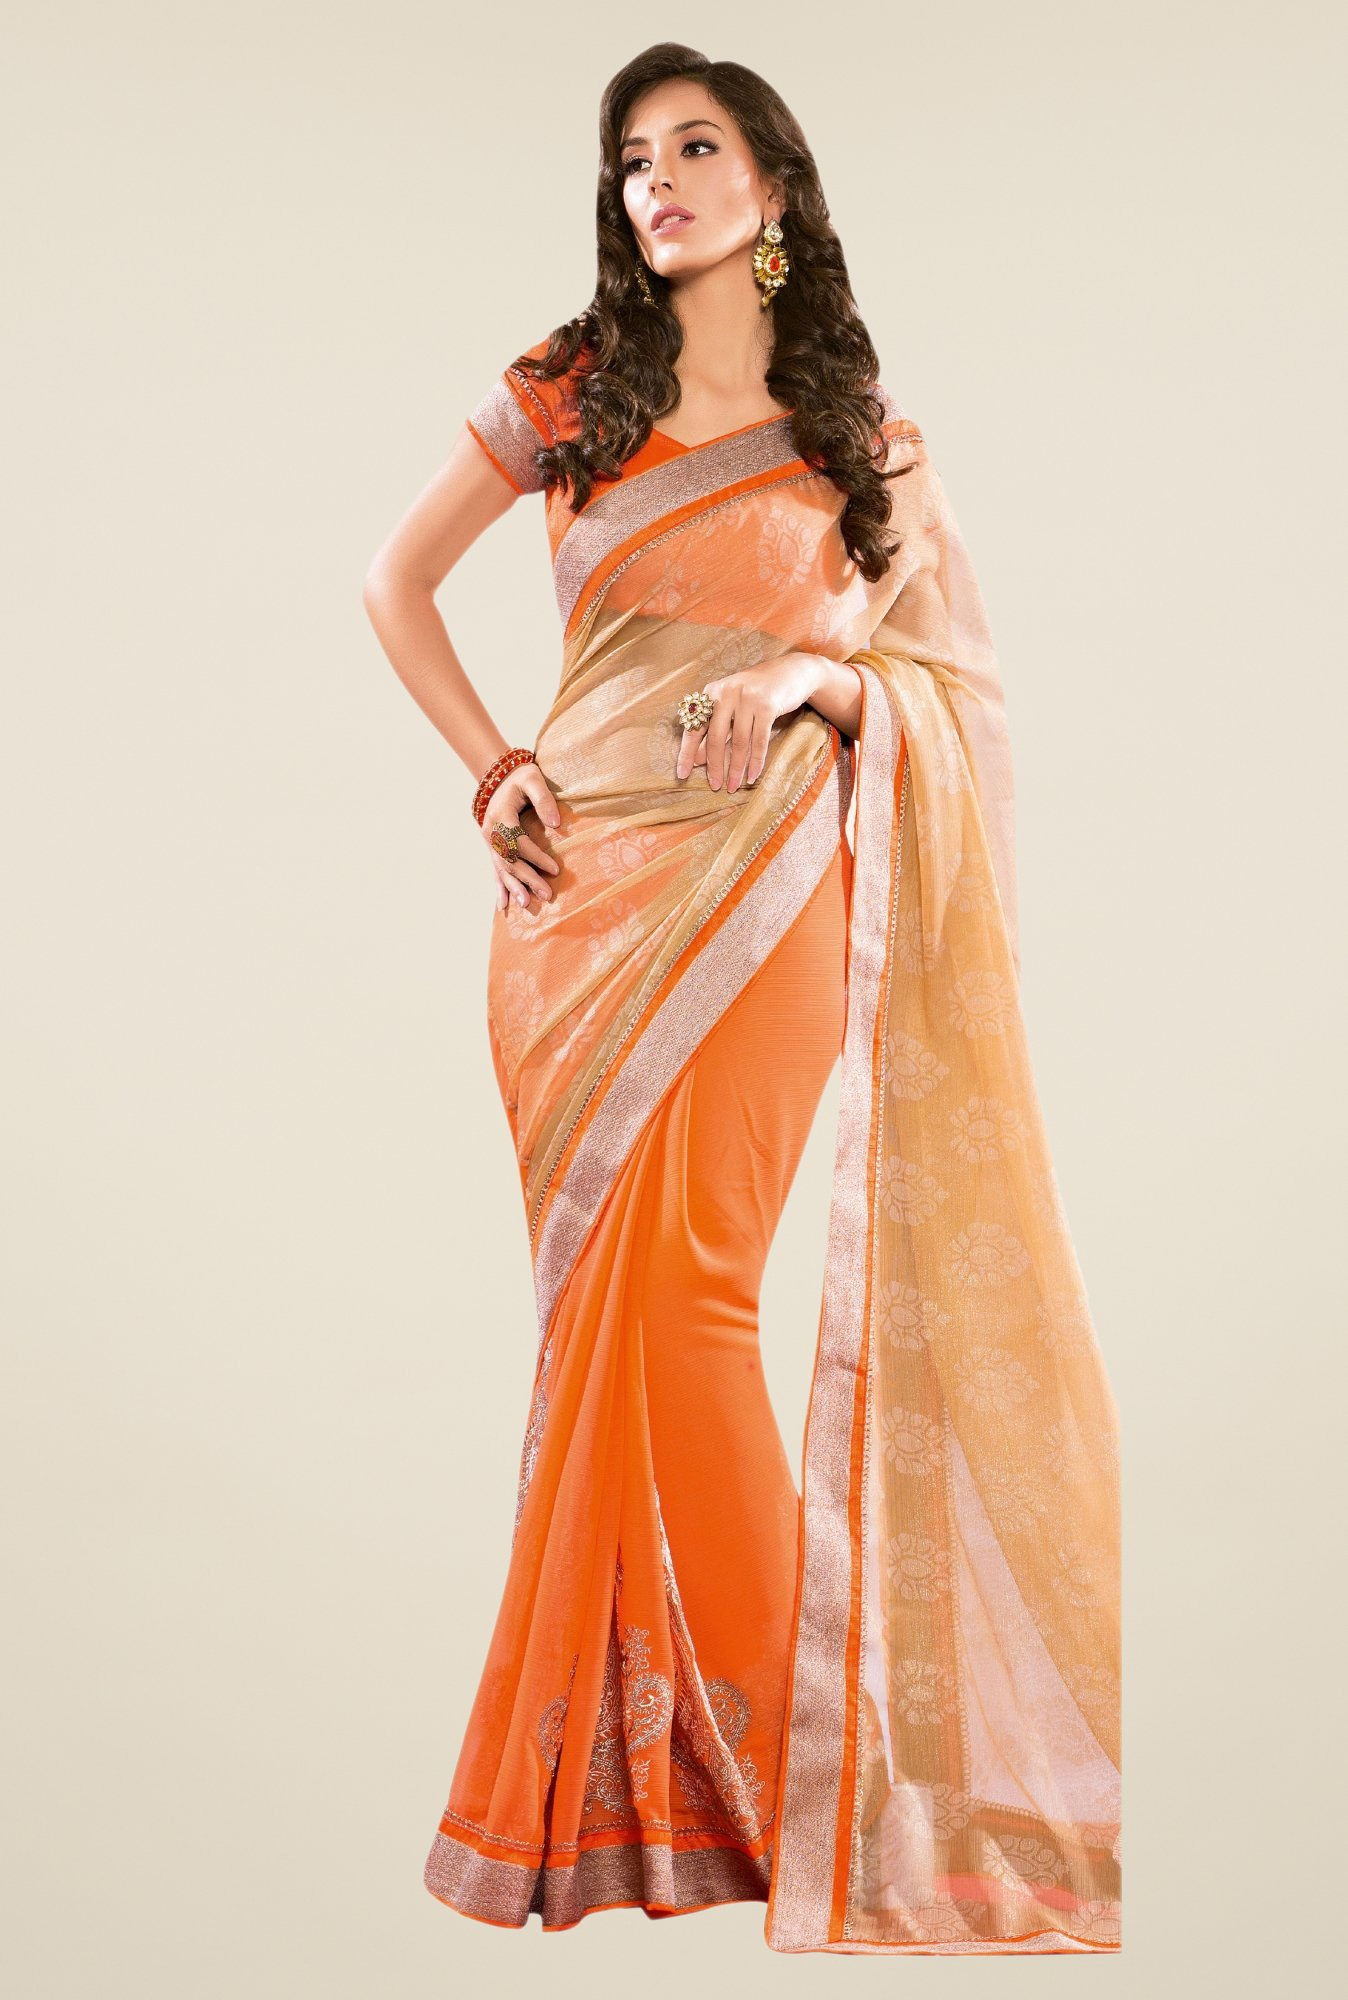 Triveni Orange Printed Chiffon Saree